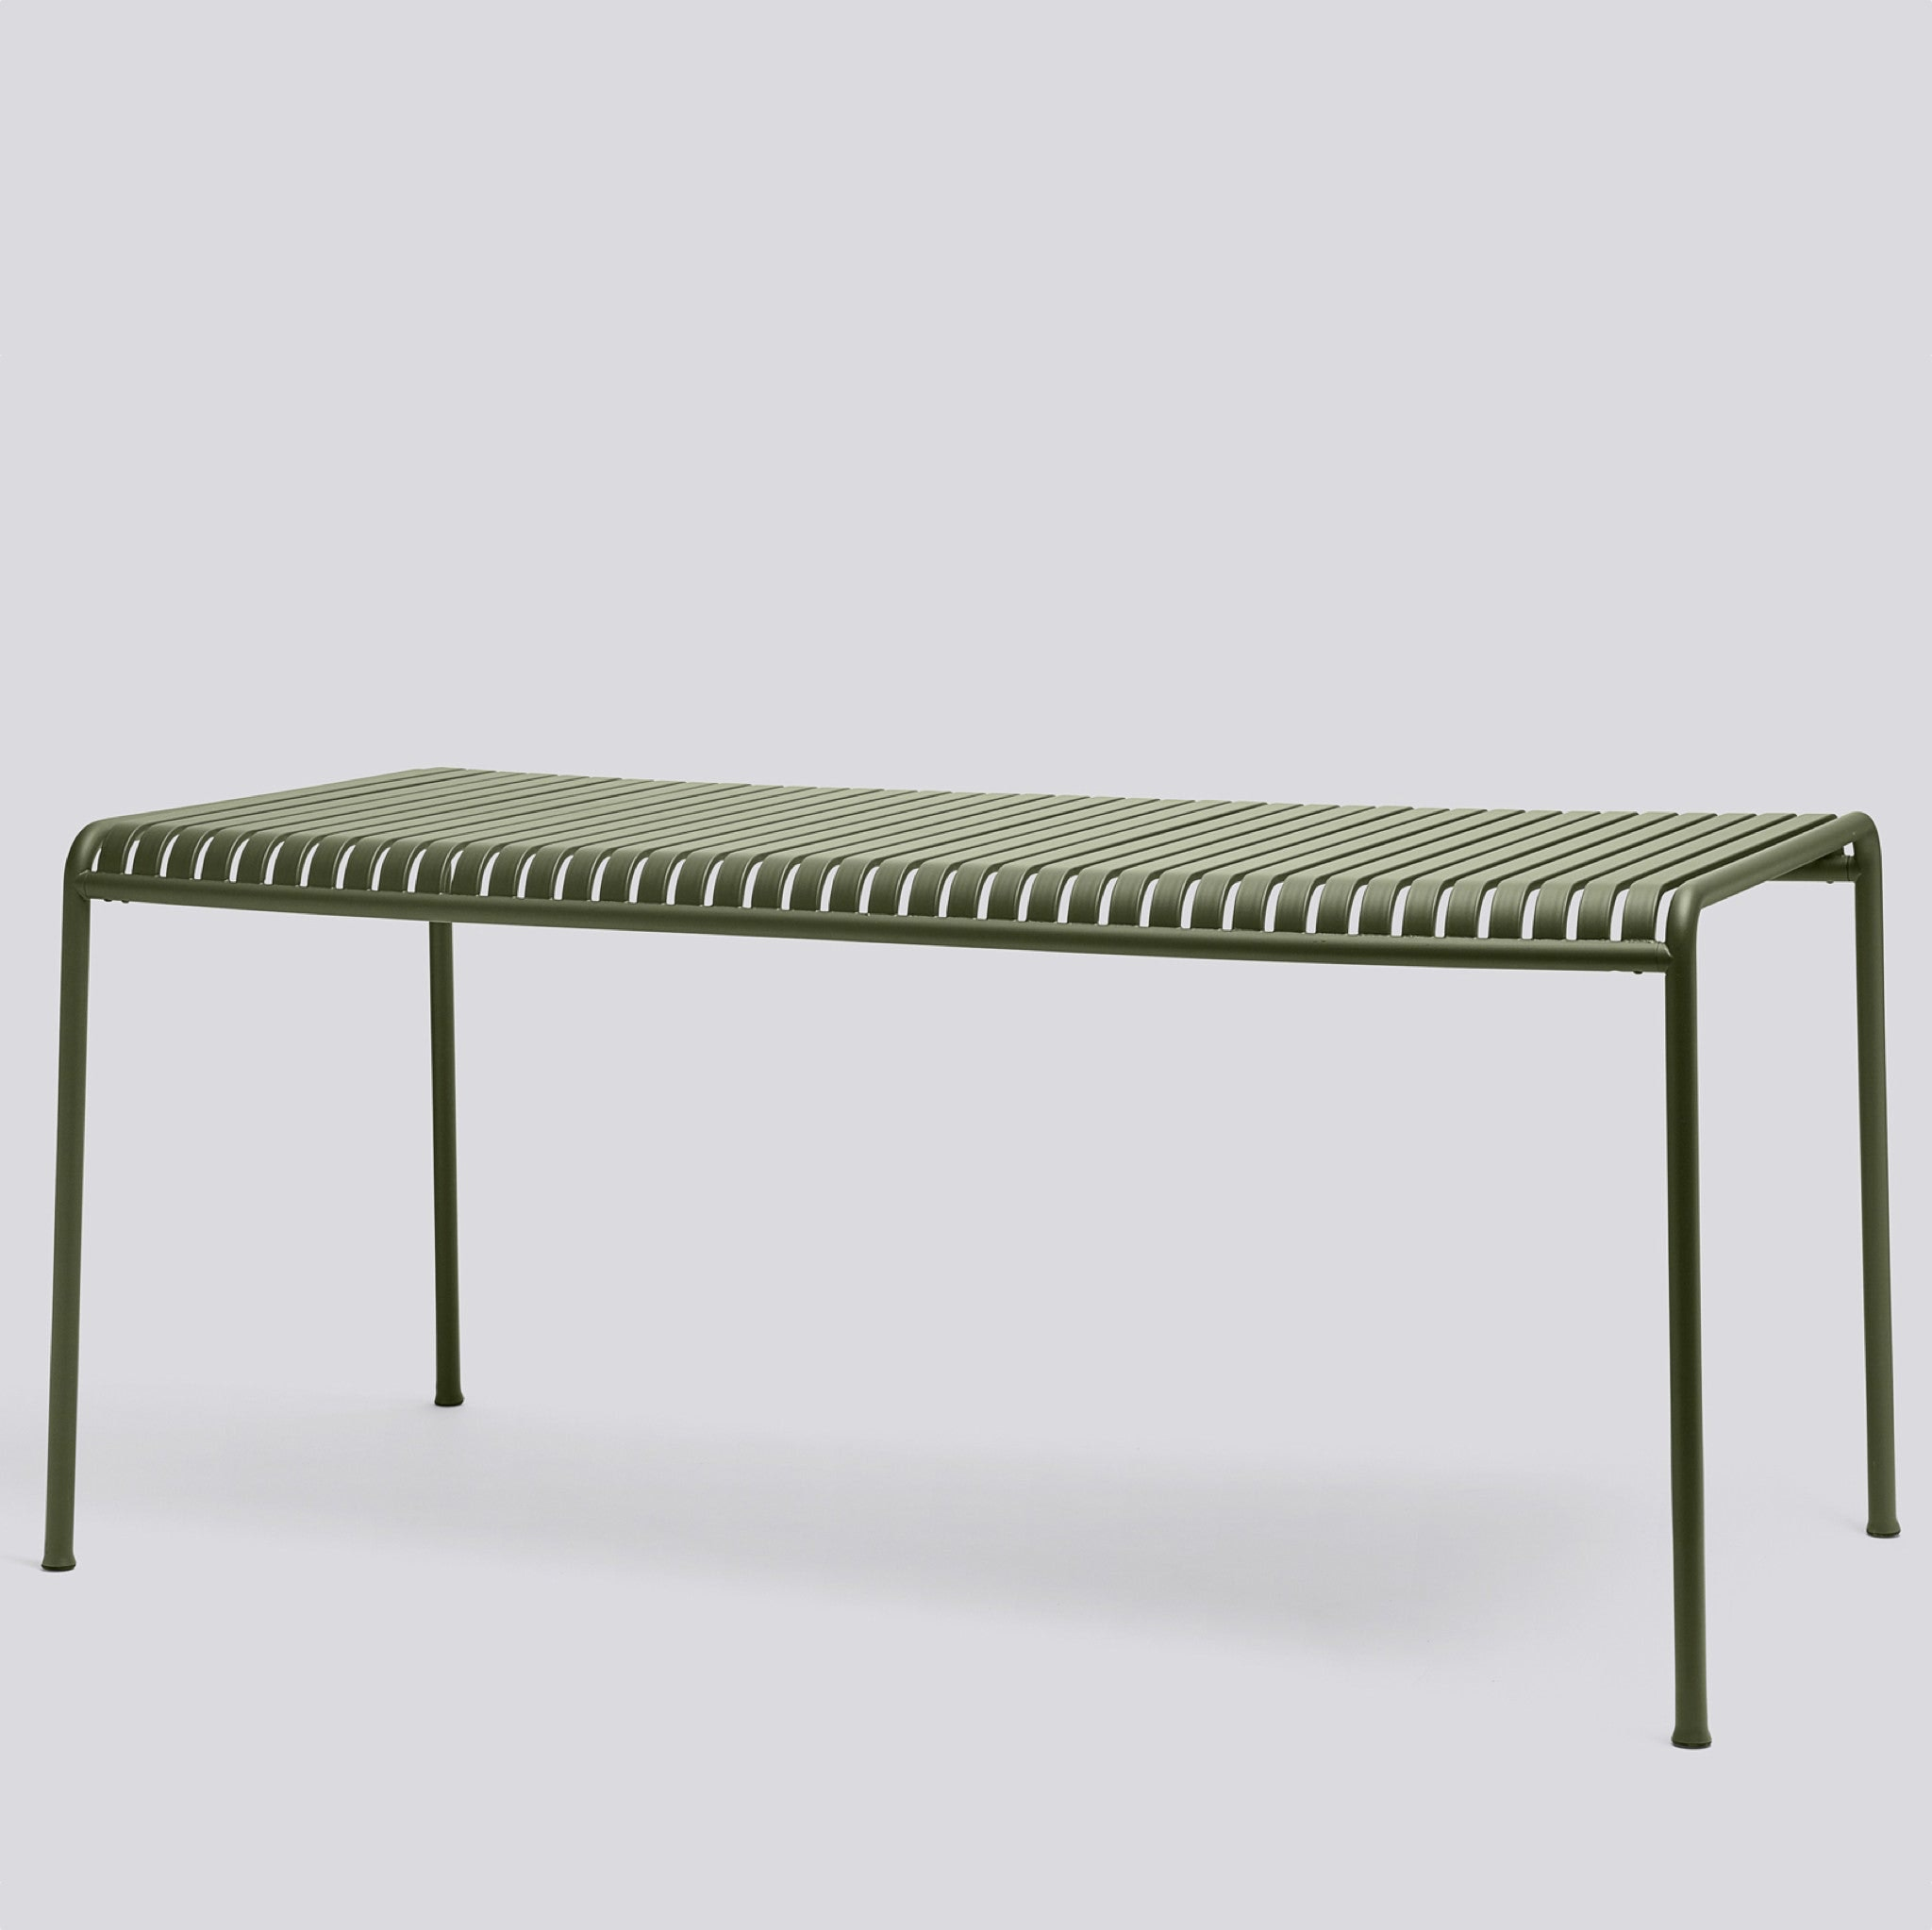 Palissade Rectangular Dining Table by Hay